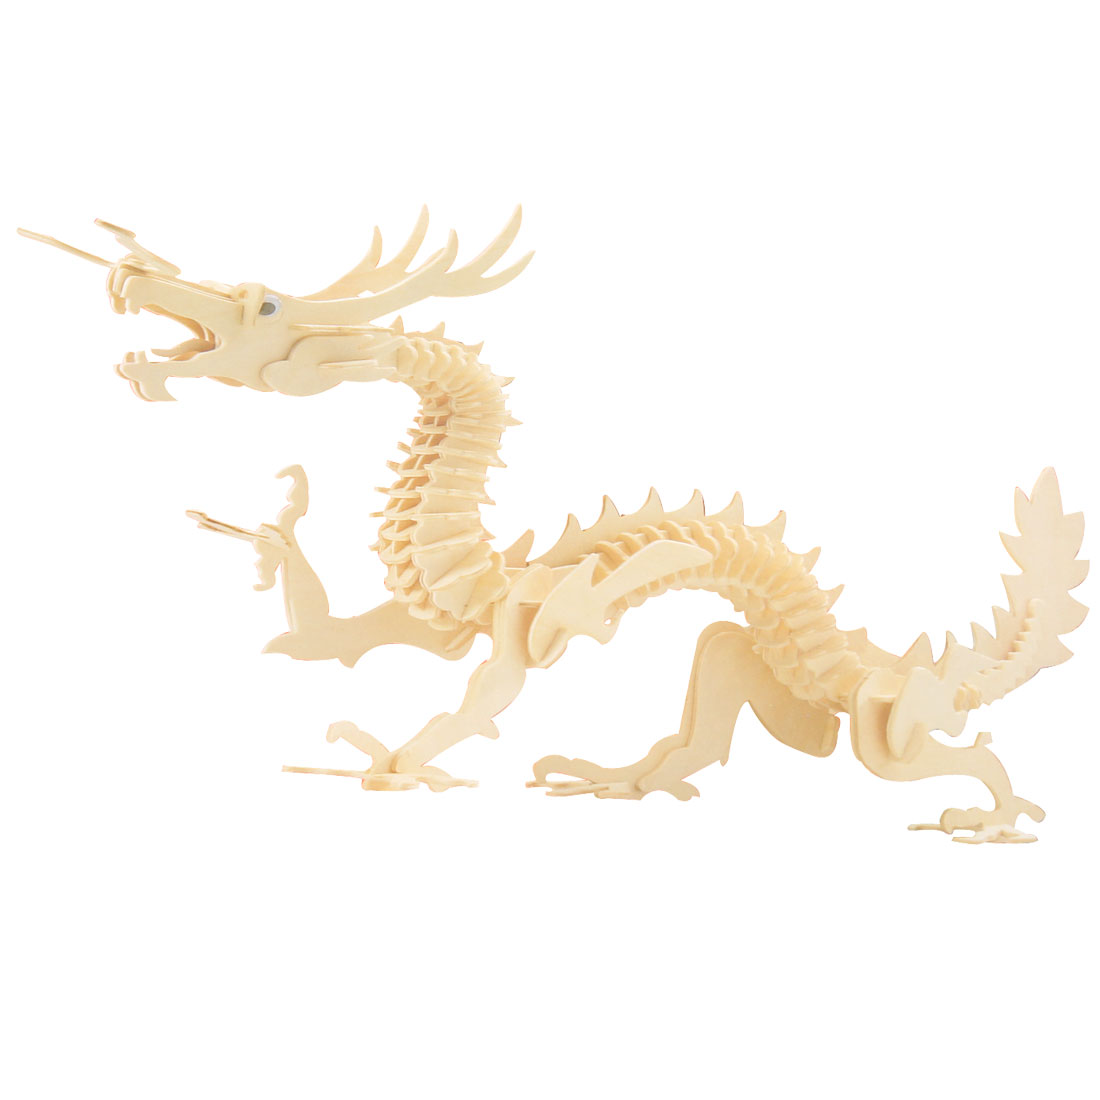 Puzzled DIY 3D Wooden Dragon Model Construction Kit Puzzle Toy Gift